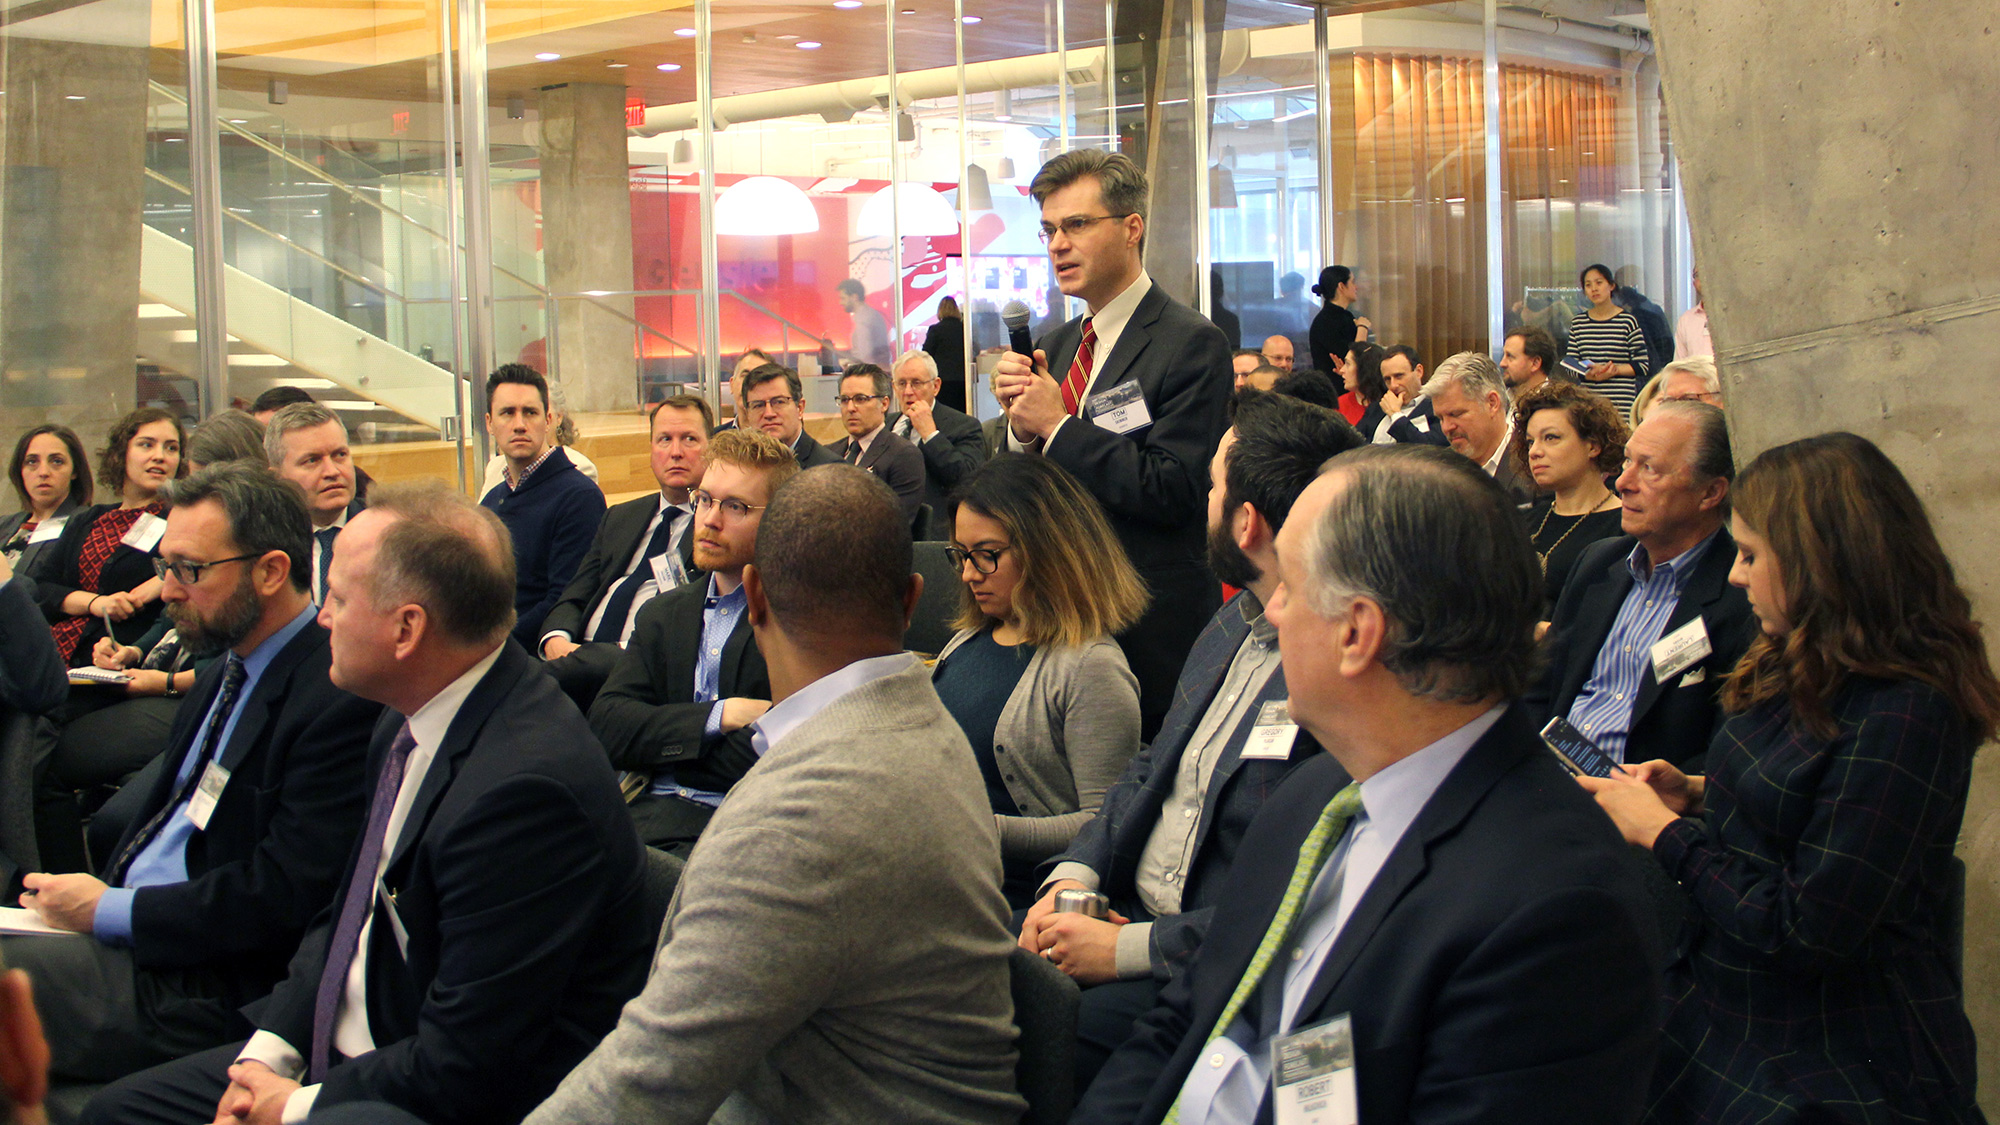 An audience member for Gensler D.C.'s Design Forecast Local event